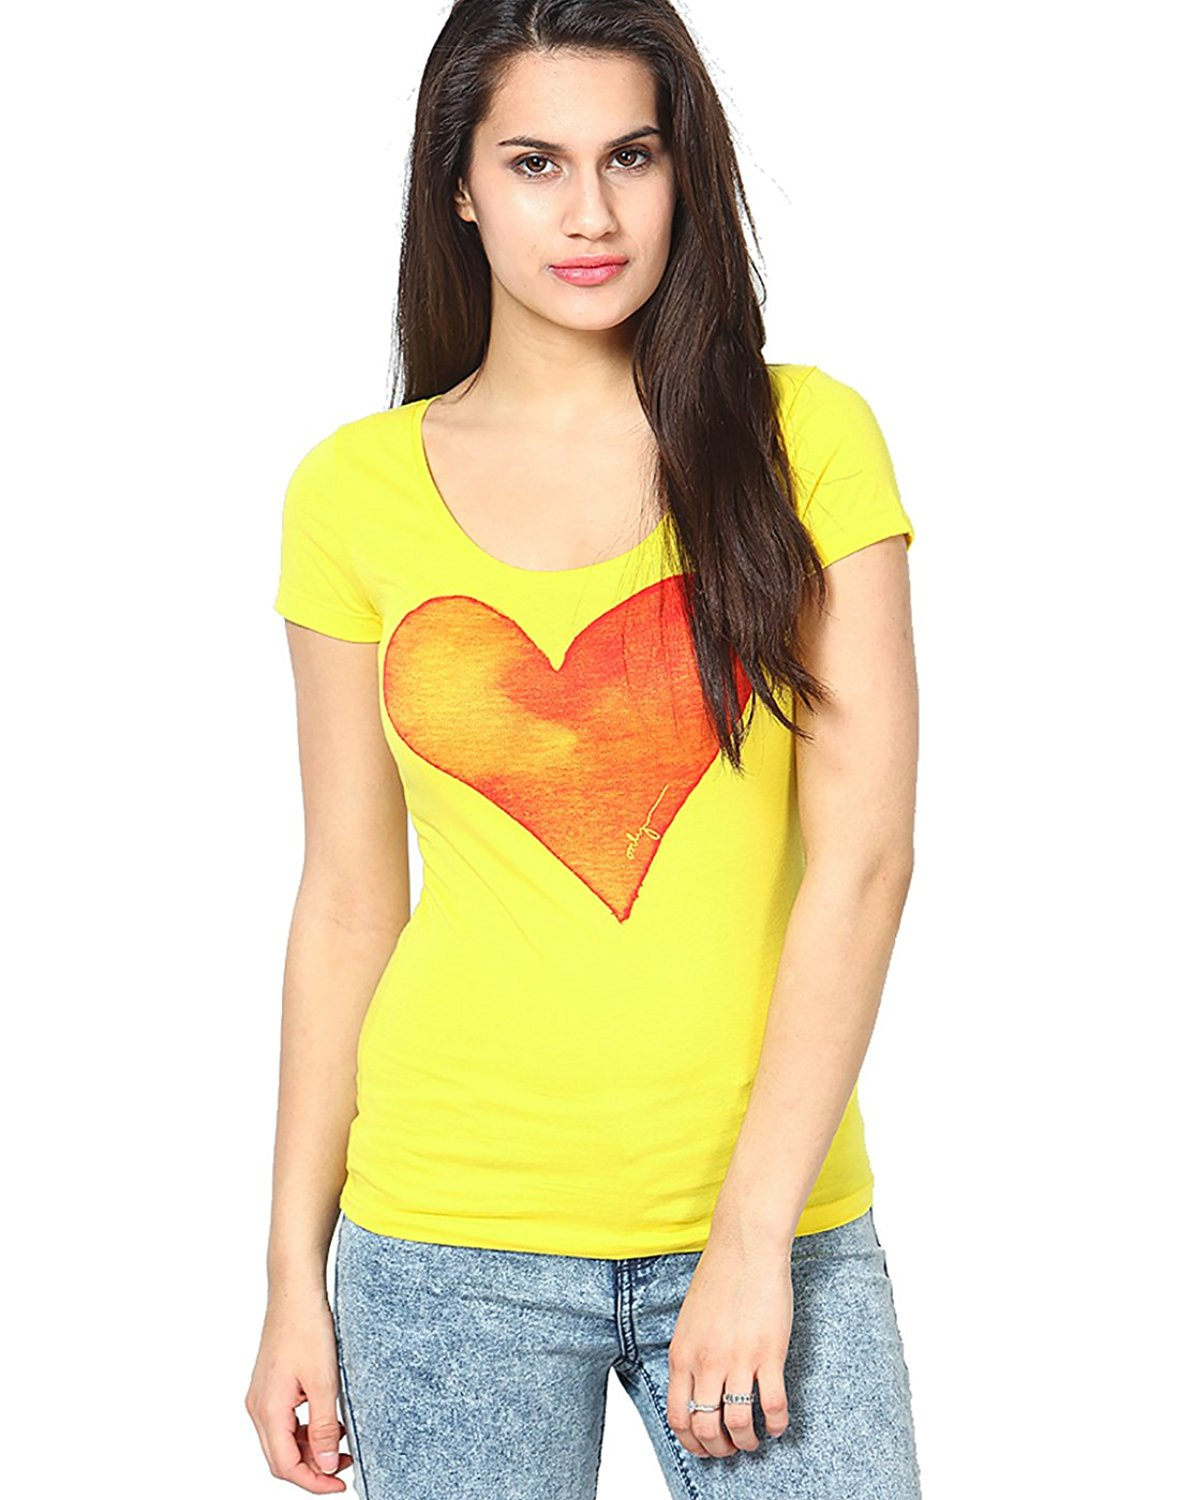 Branded Only Womens Clothing Minimum 80% OFF Starts at Rs. 247 discount offer